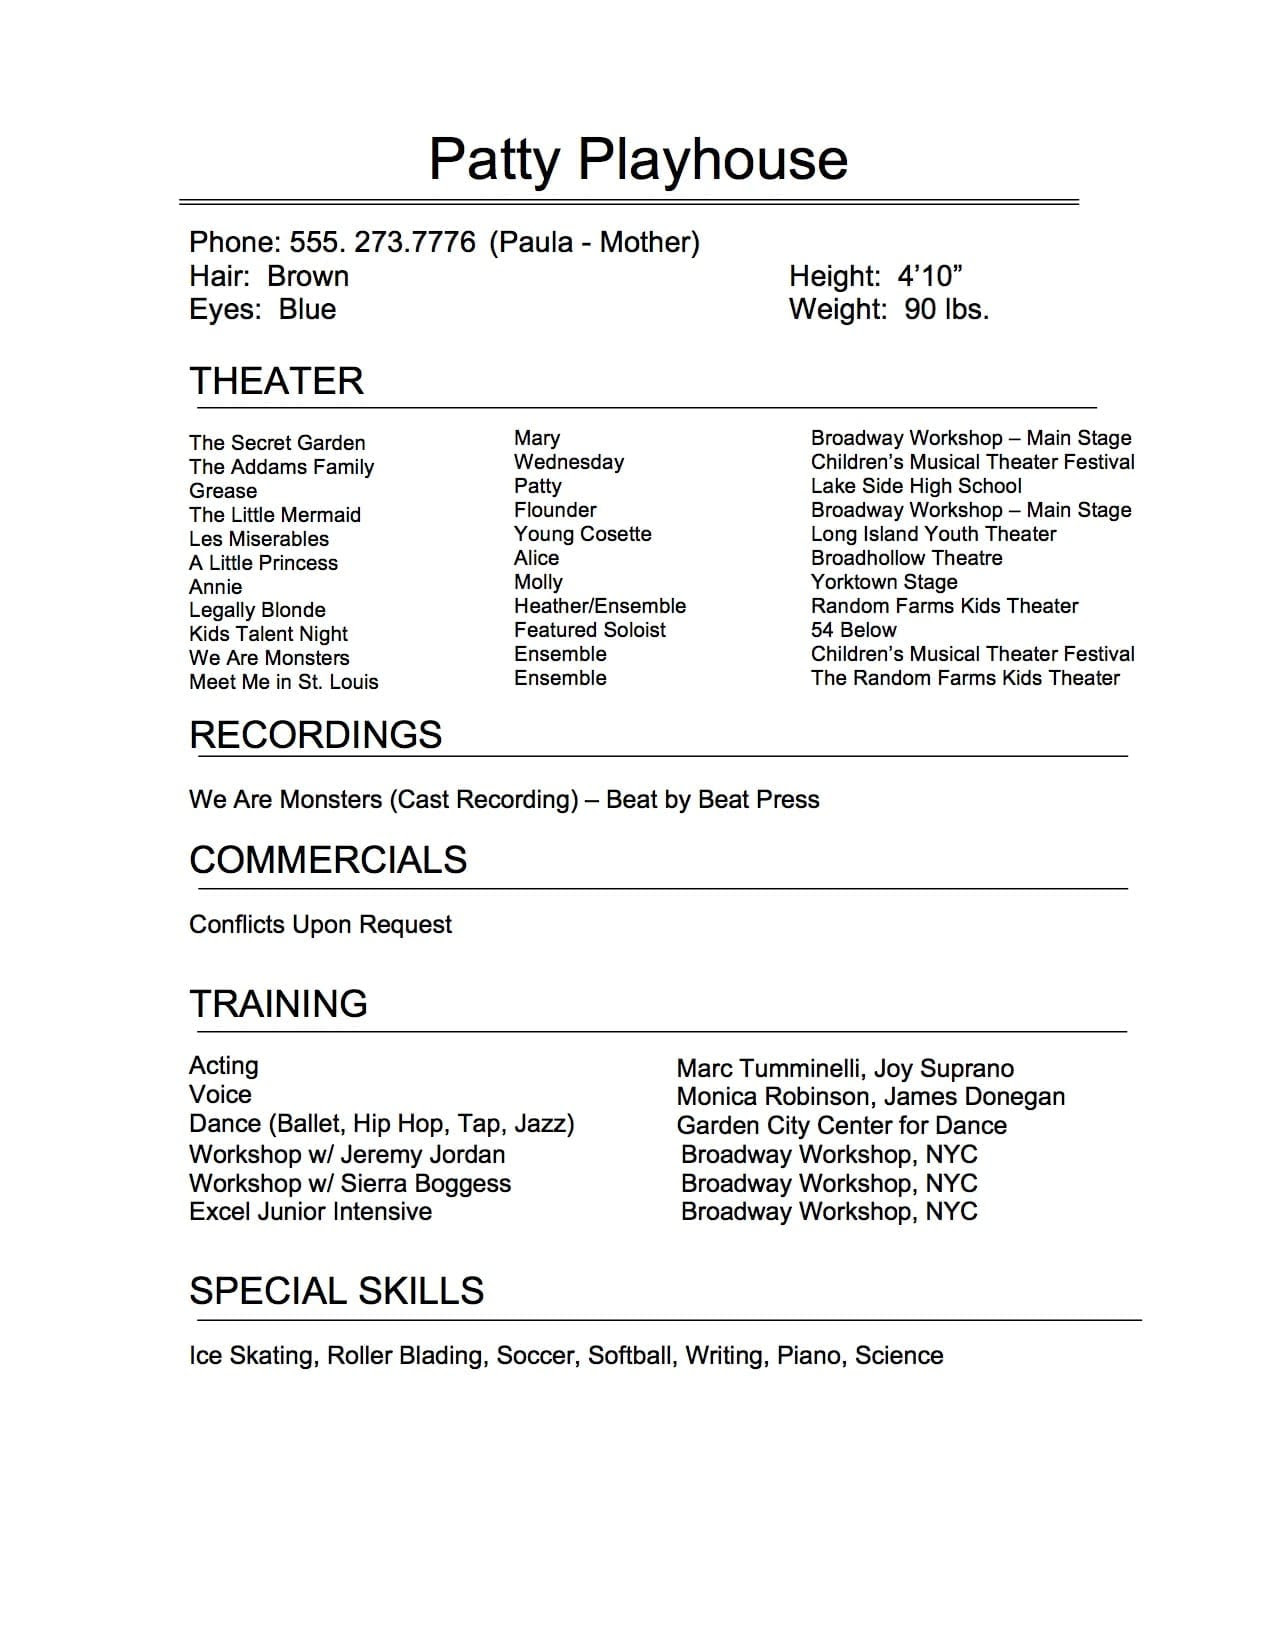 Theatre Resume Template from lh5.googleusercontent.com